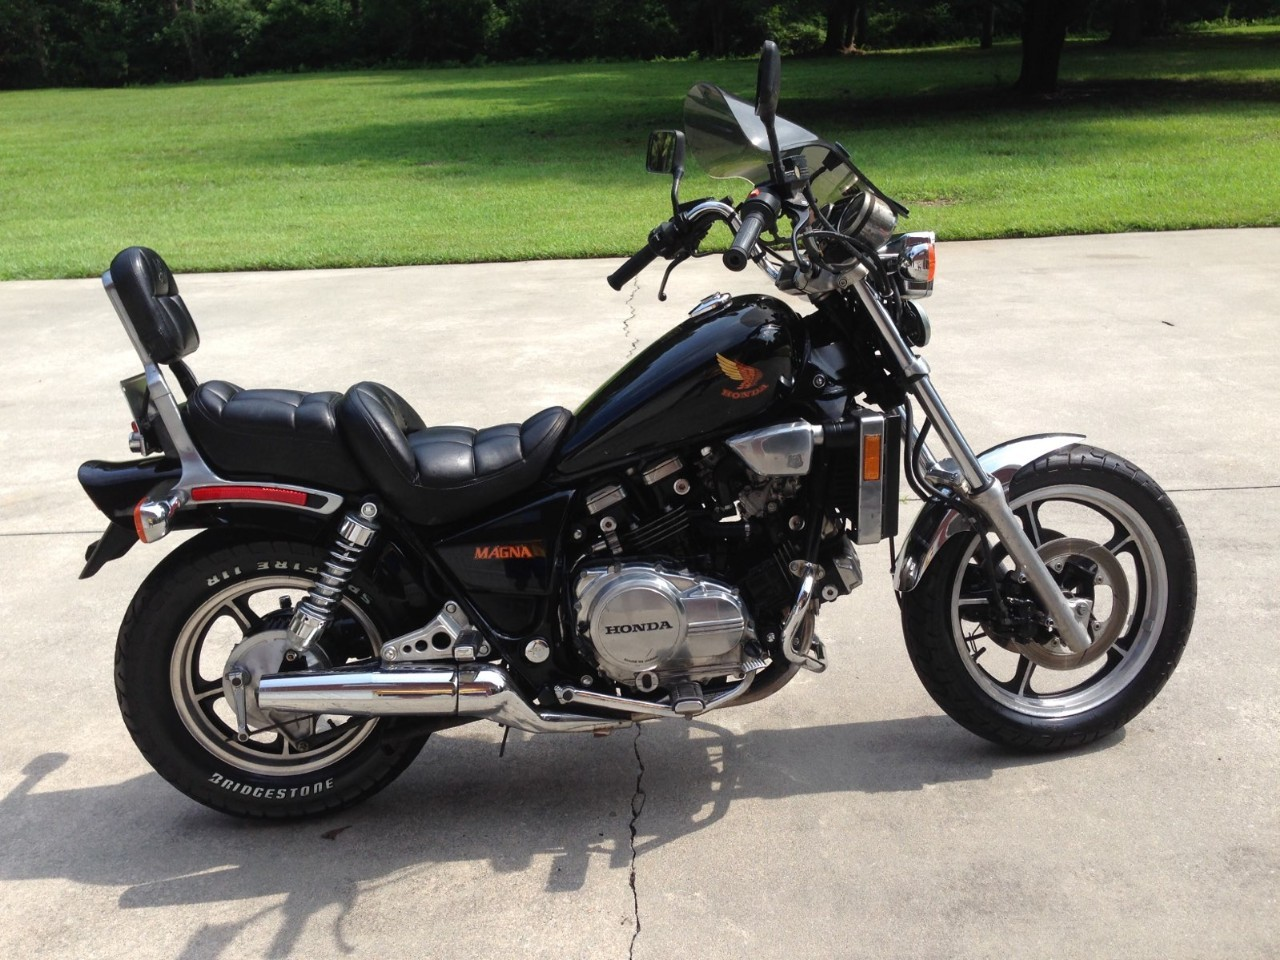 Honda Motorcycles For Sale 39040 Cycle Trader Motorcycle Engine Diagram 2008 C70 Get Free Image About Wiring